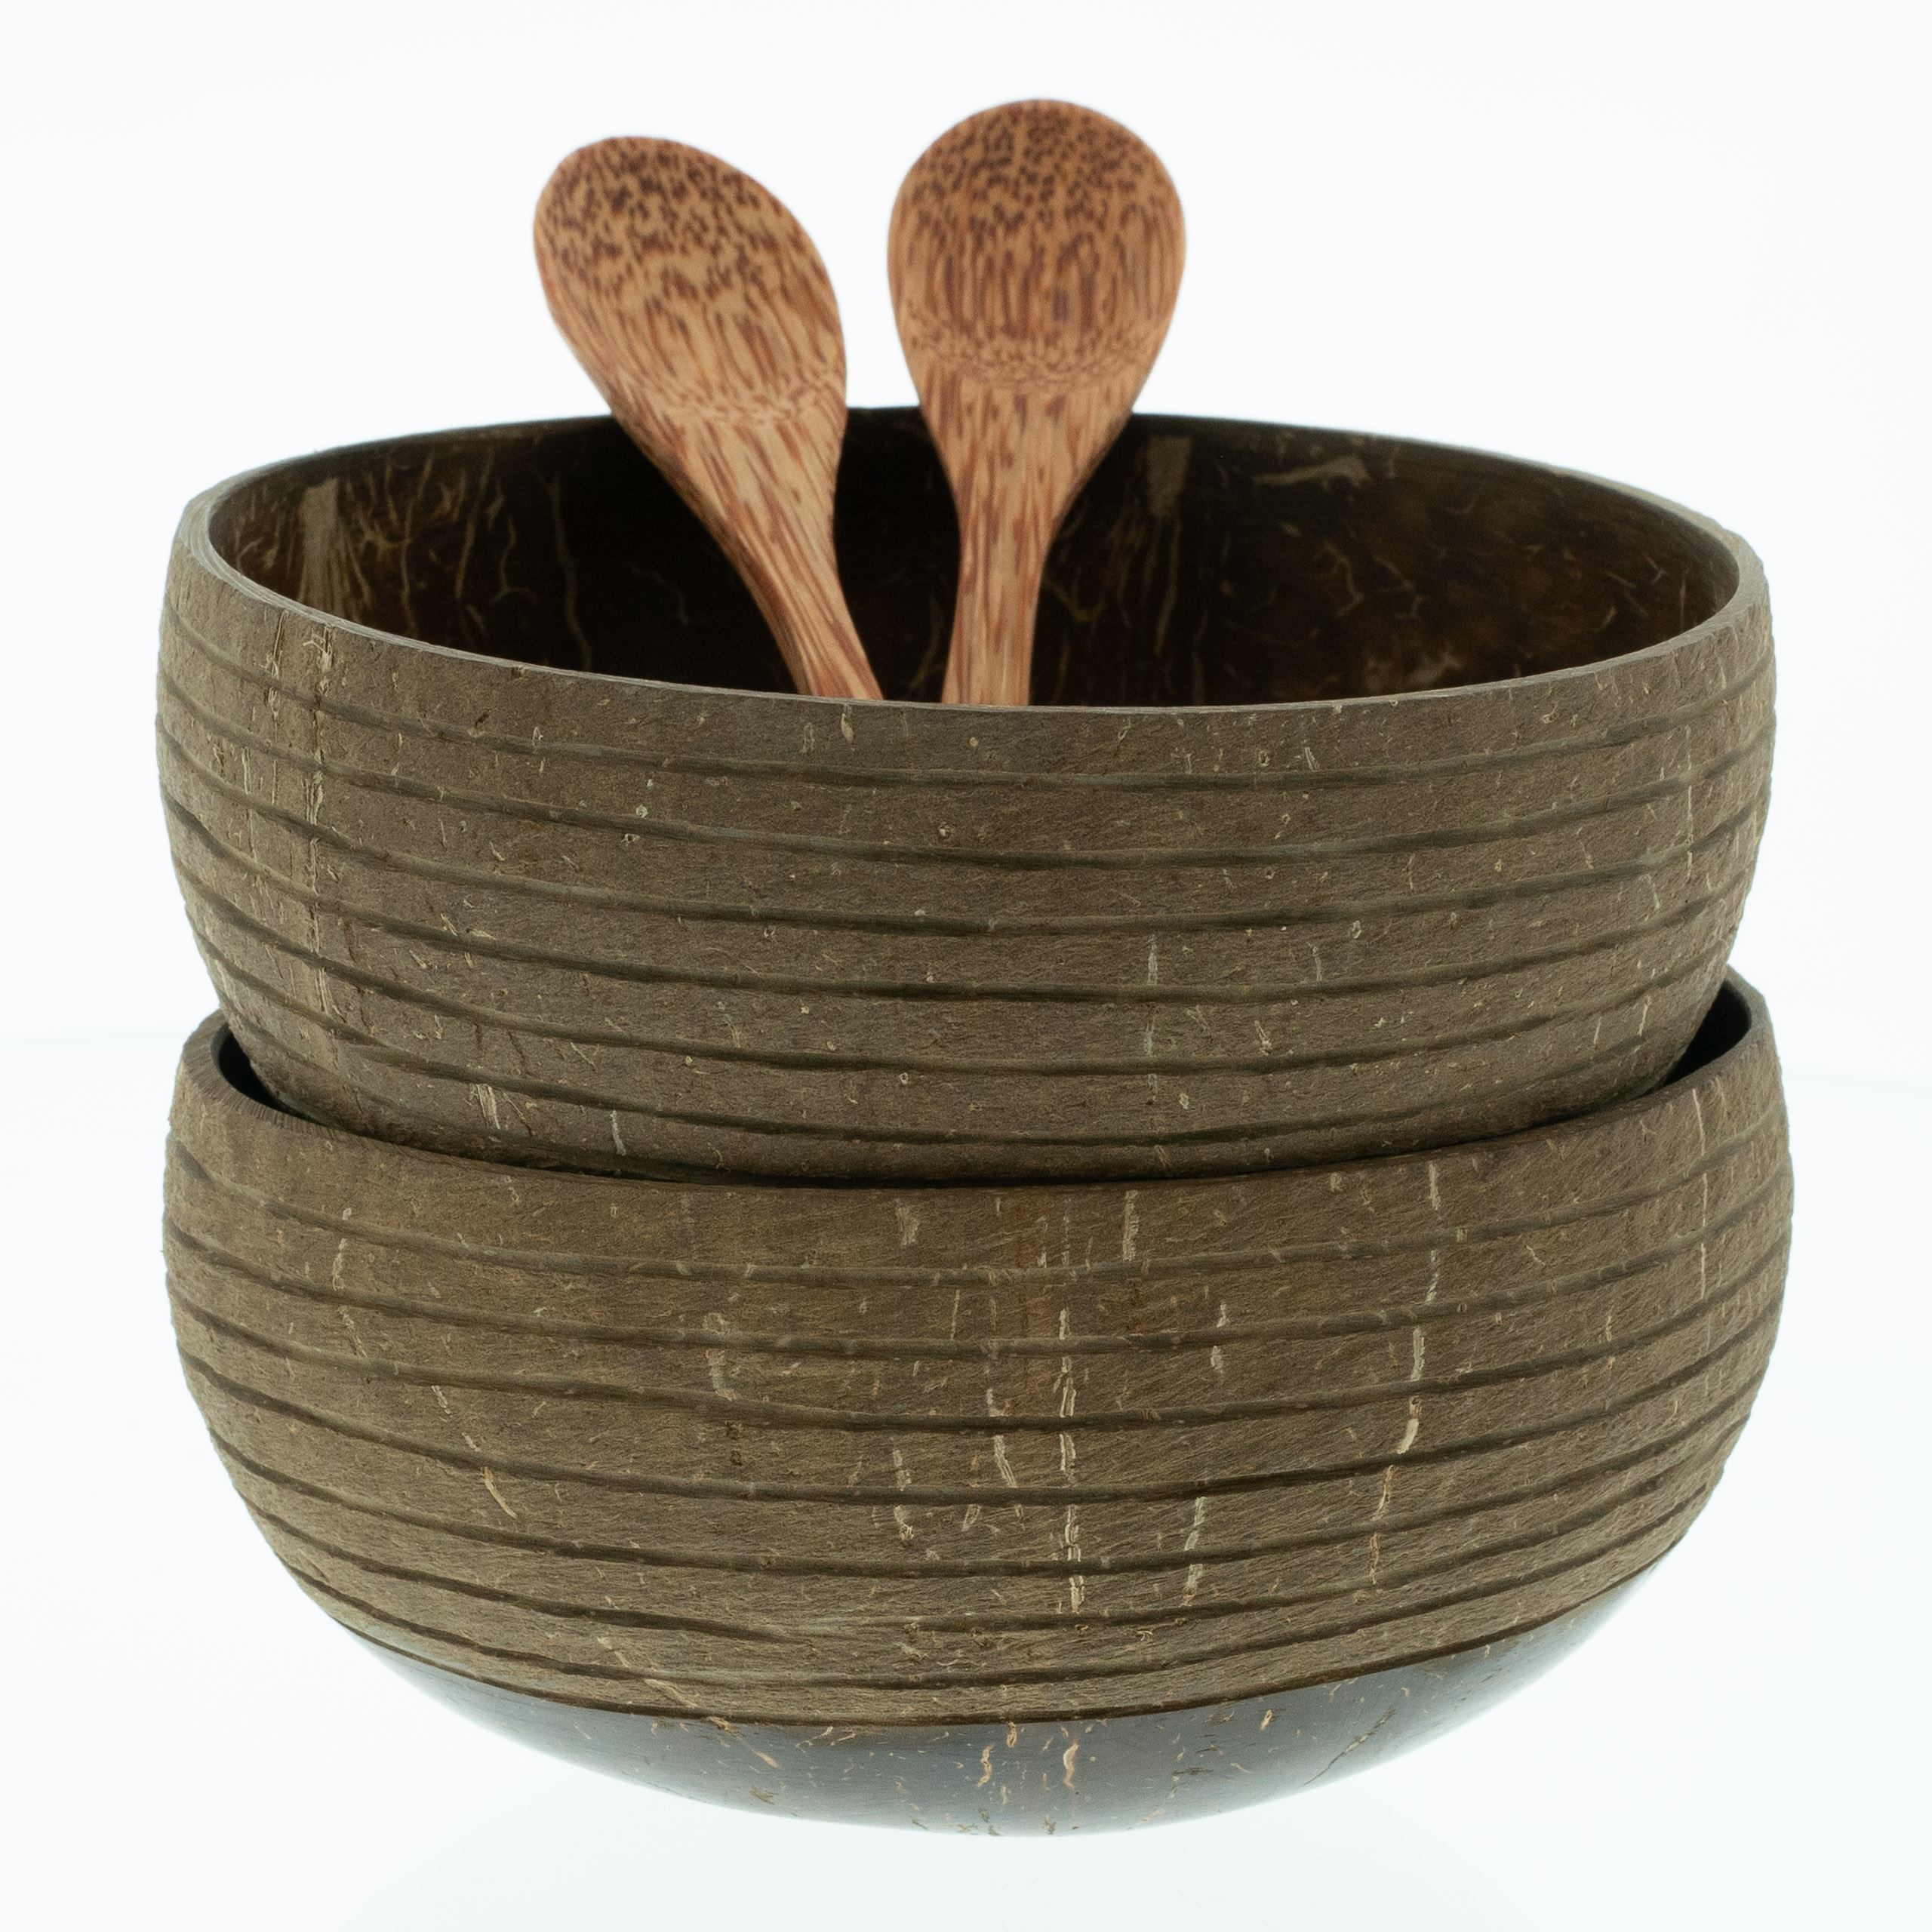 "Ausführung: Set of 2 ""Hoi An"" ribbed Coconut Bowls with handcarved spoon"